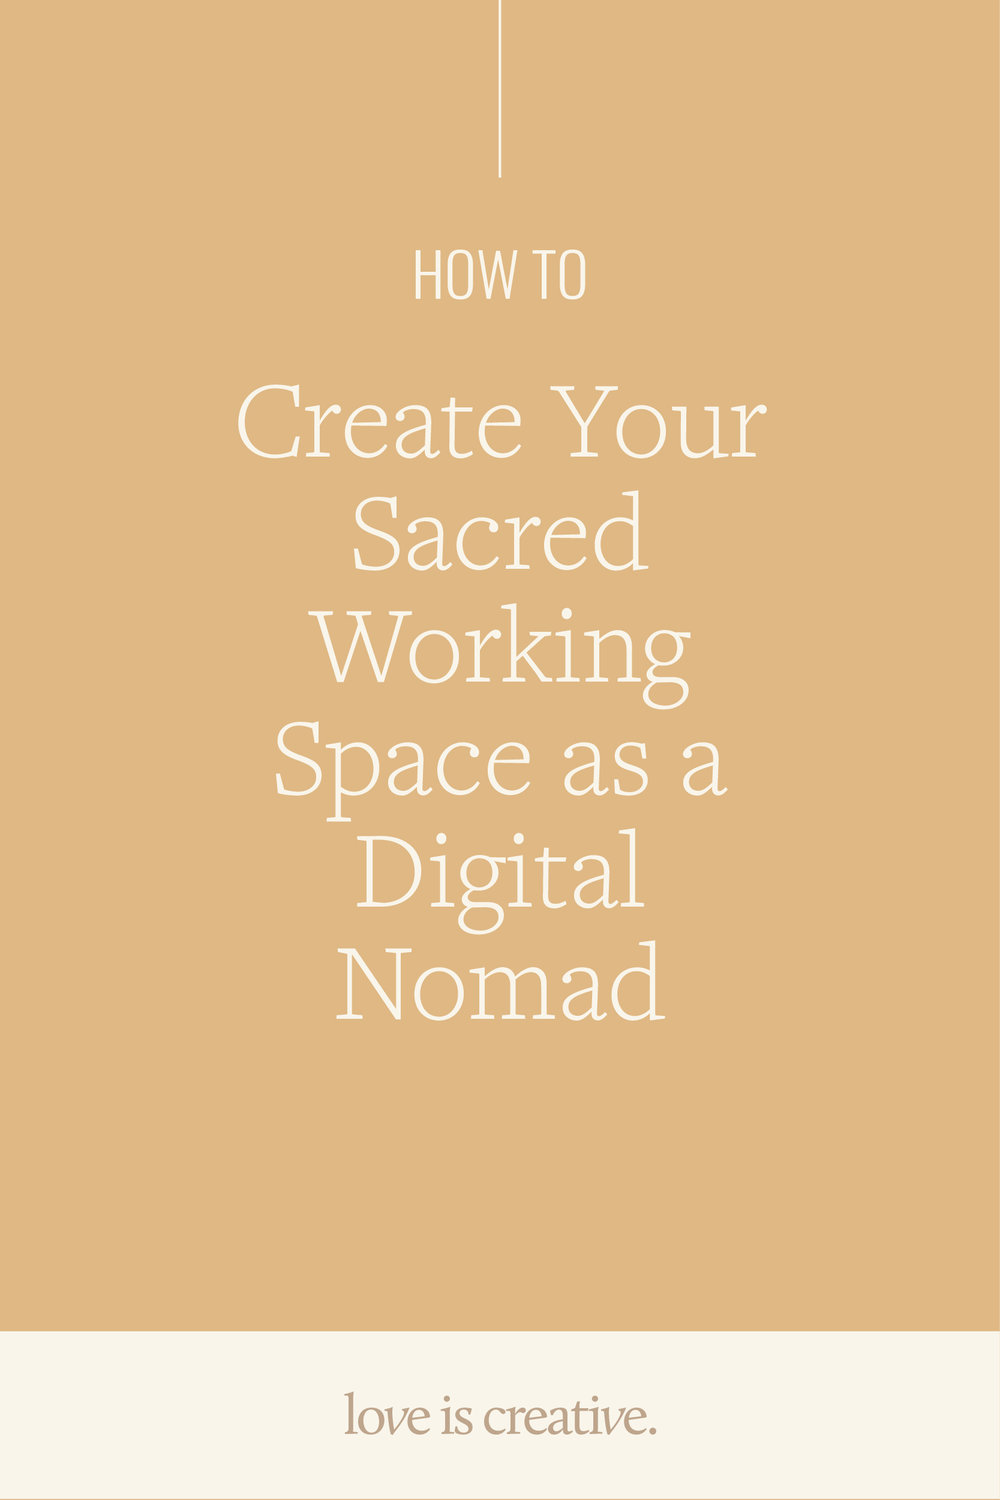 How to Create your Sacred Working Space as a Digital Nomad